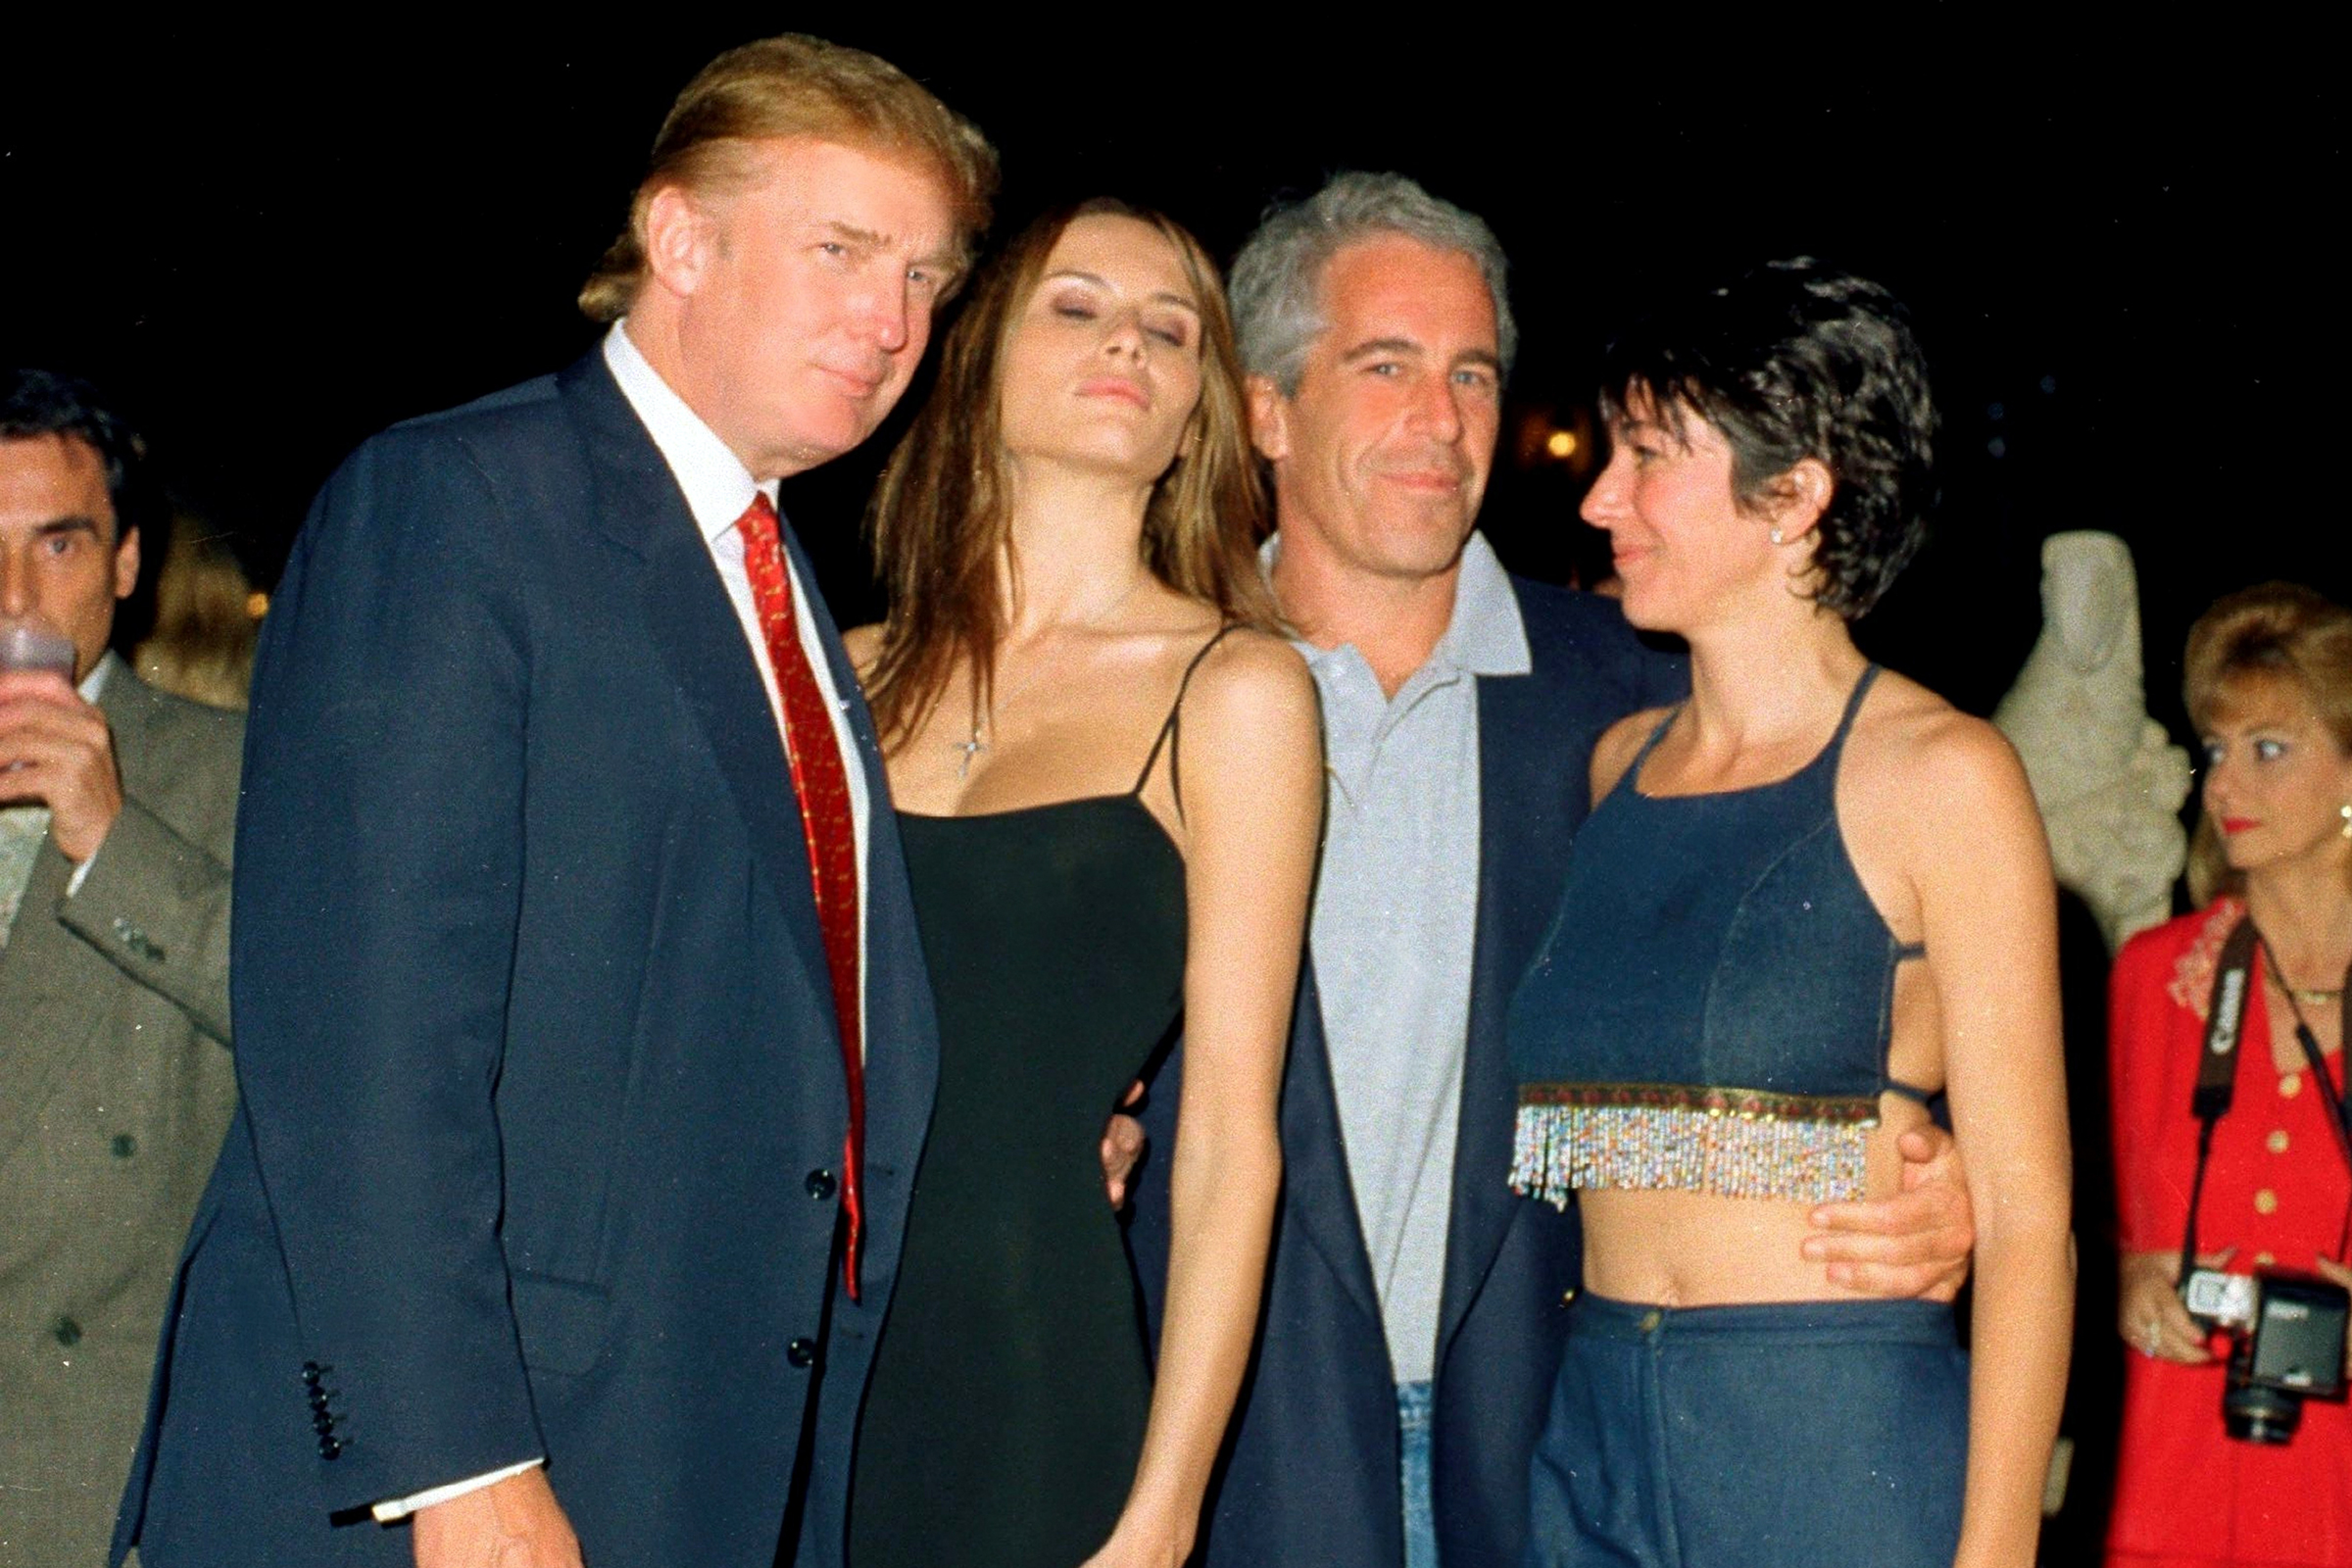 Jeffrey Epstein Conspiracy Theories Are Taking Over ... - photo#29